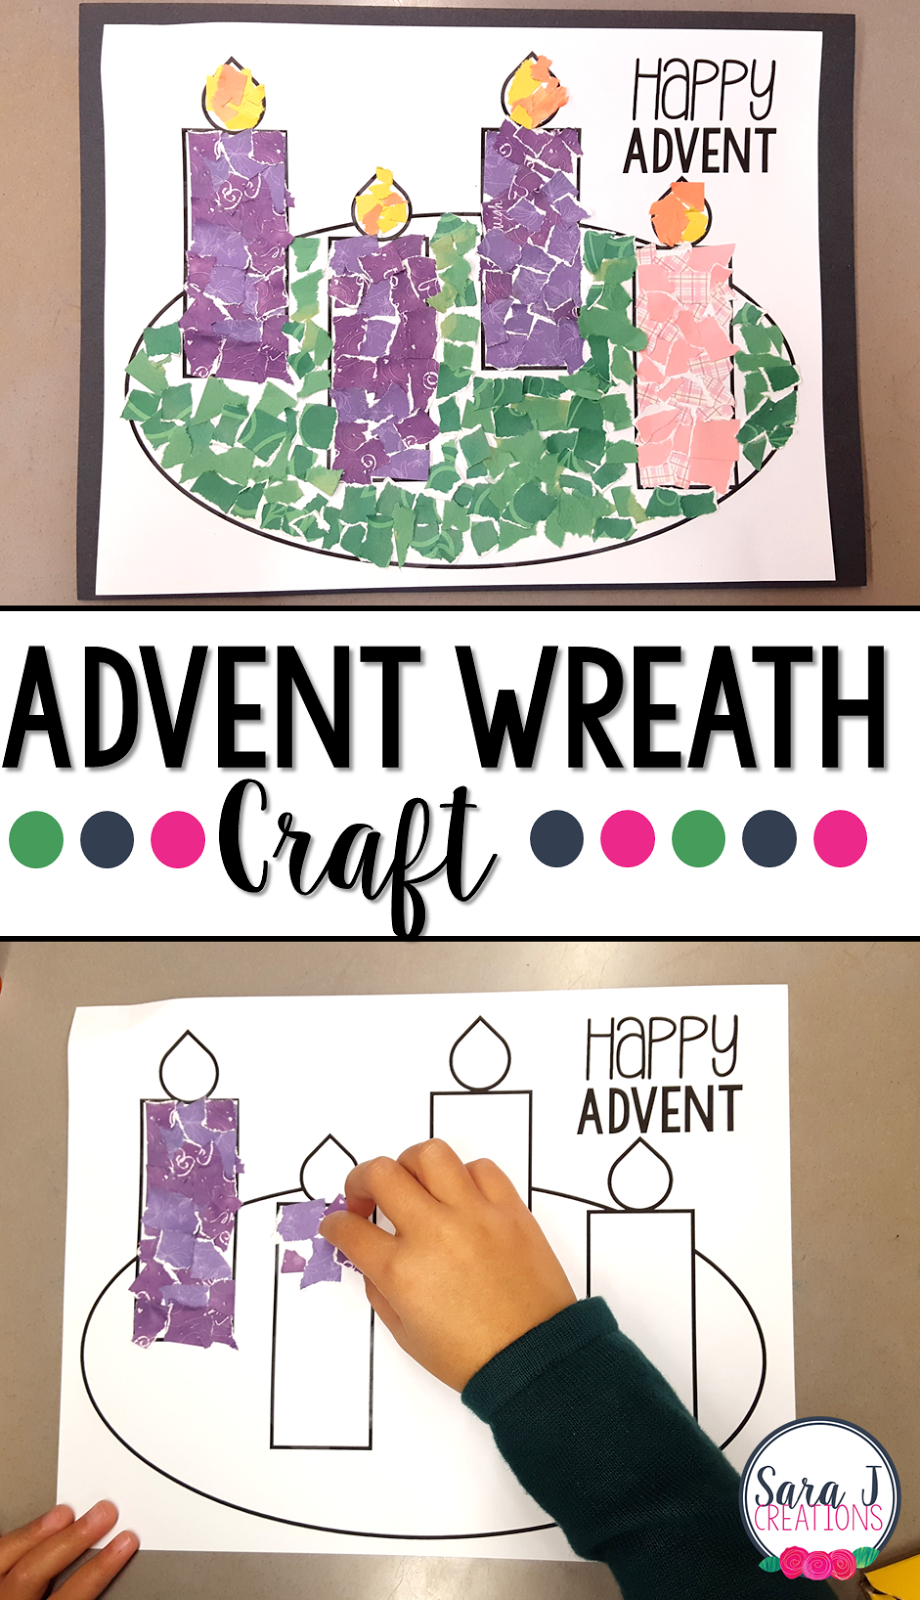 small resolution of 100+ Simple Catholic Advent Crafts and Activities for Kids